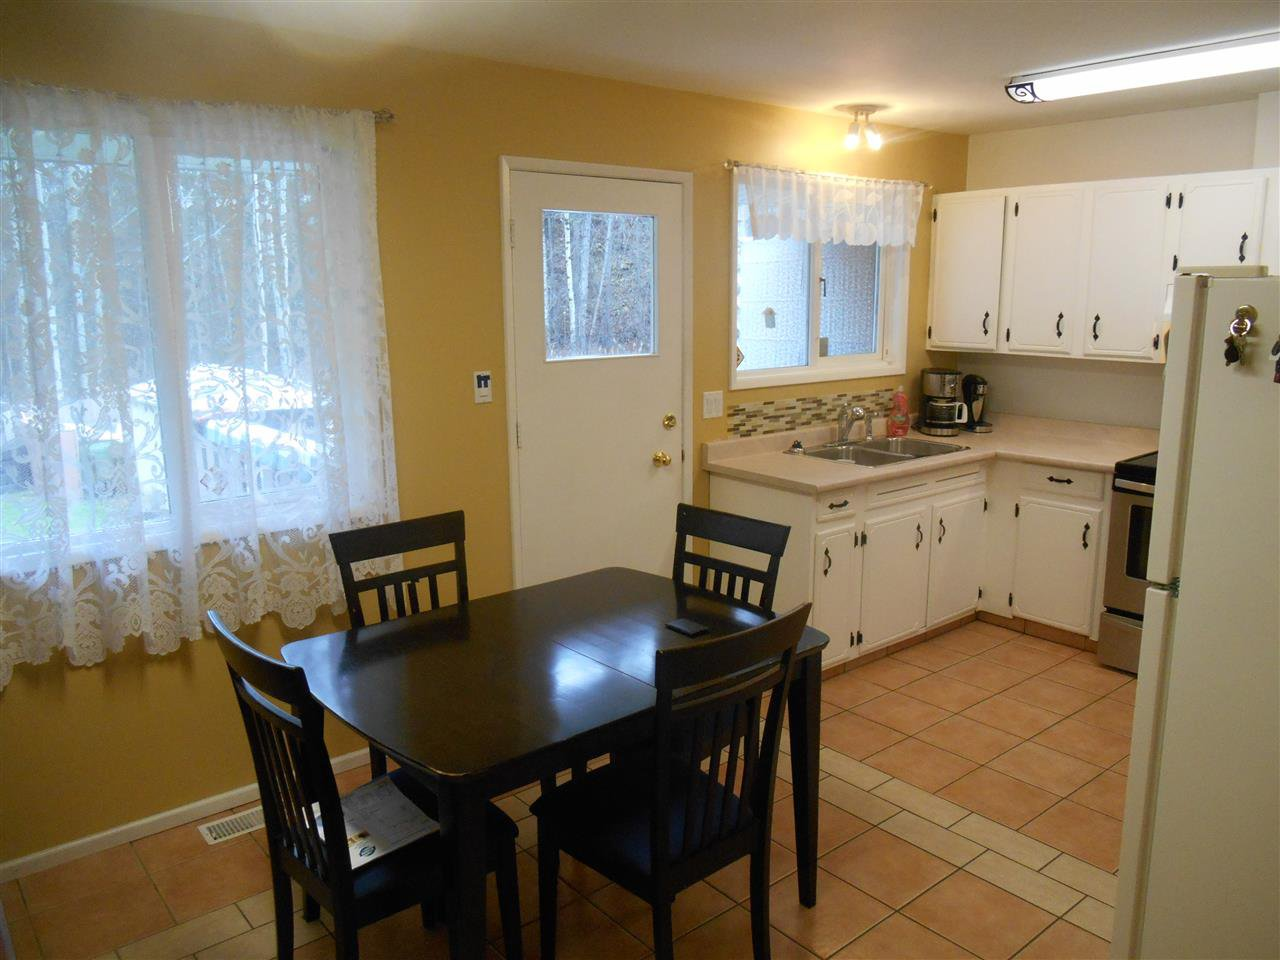 Photo 4: Photos: 1955 GARDEN Drive in Prince George: Seymour House for sale (PG City Central (Zone 72))  : MLS®# R2120742